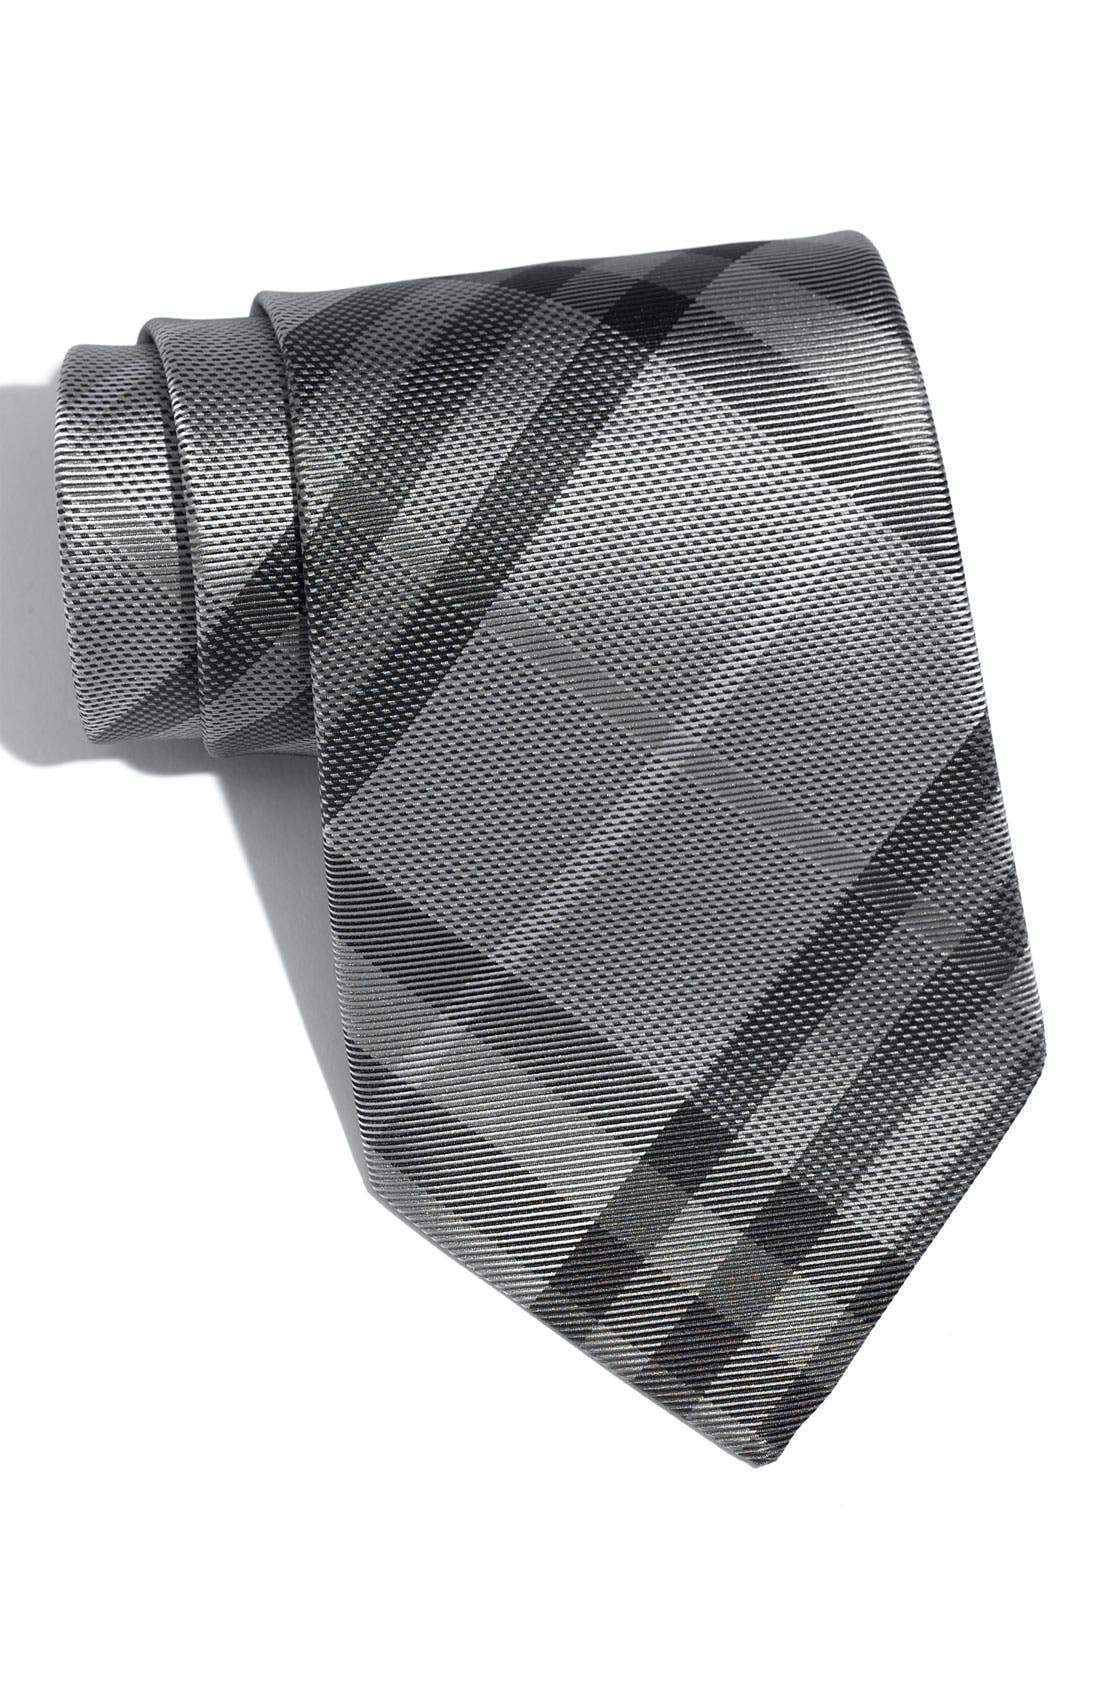 BURBERRY, London 'Regent' Woven Silk Tie, Main thumbnail 1, color, 050